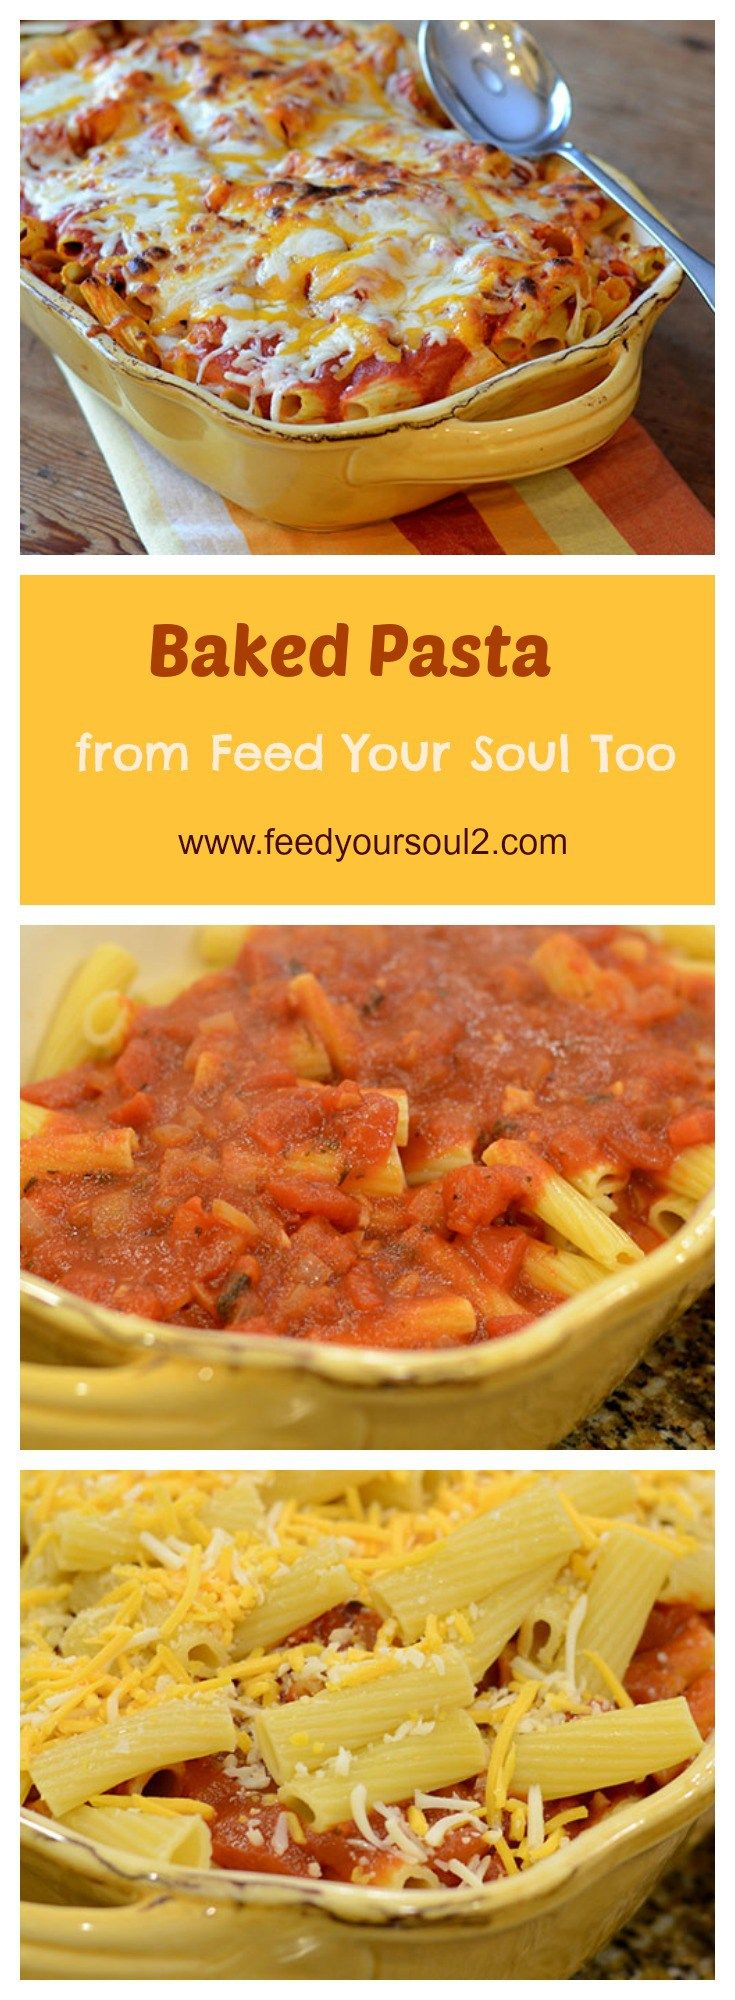 Baked Pasta from Feed Your Soul Too